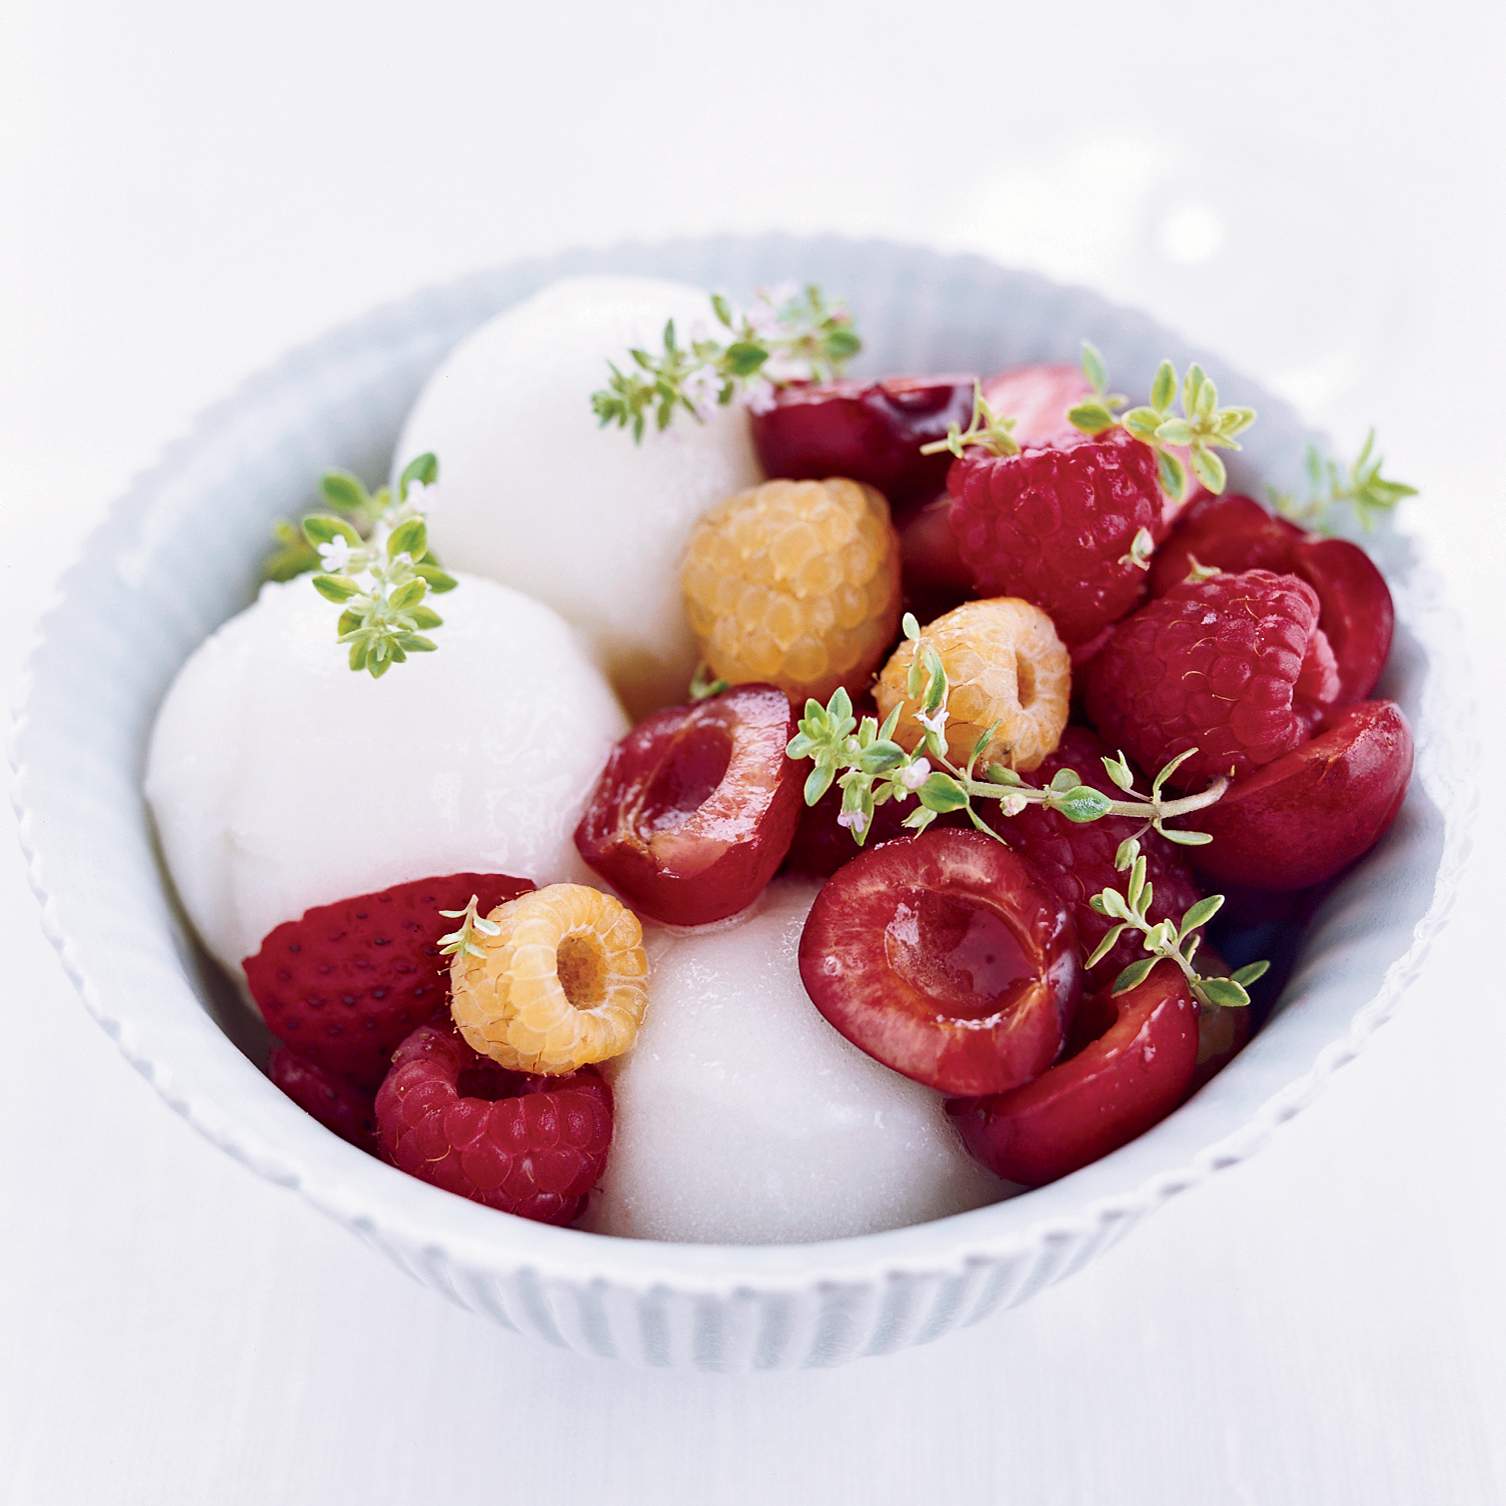 Lemon-Thyme Sorbet with Summer Berries